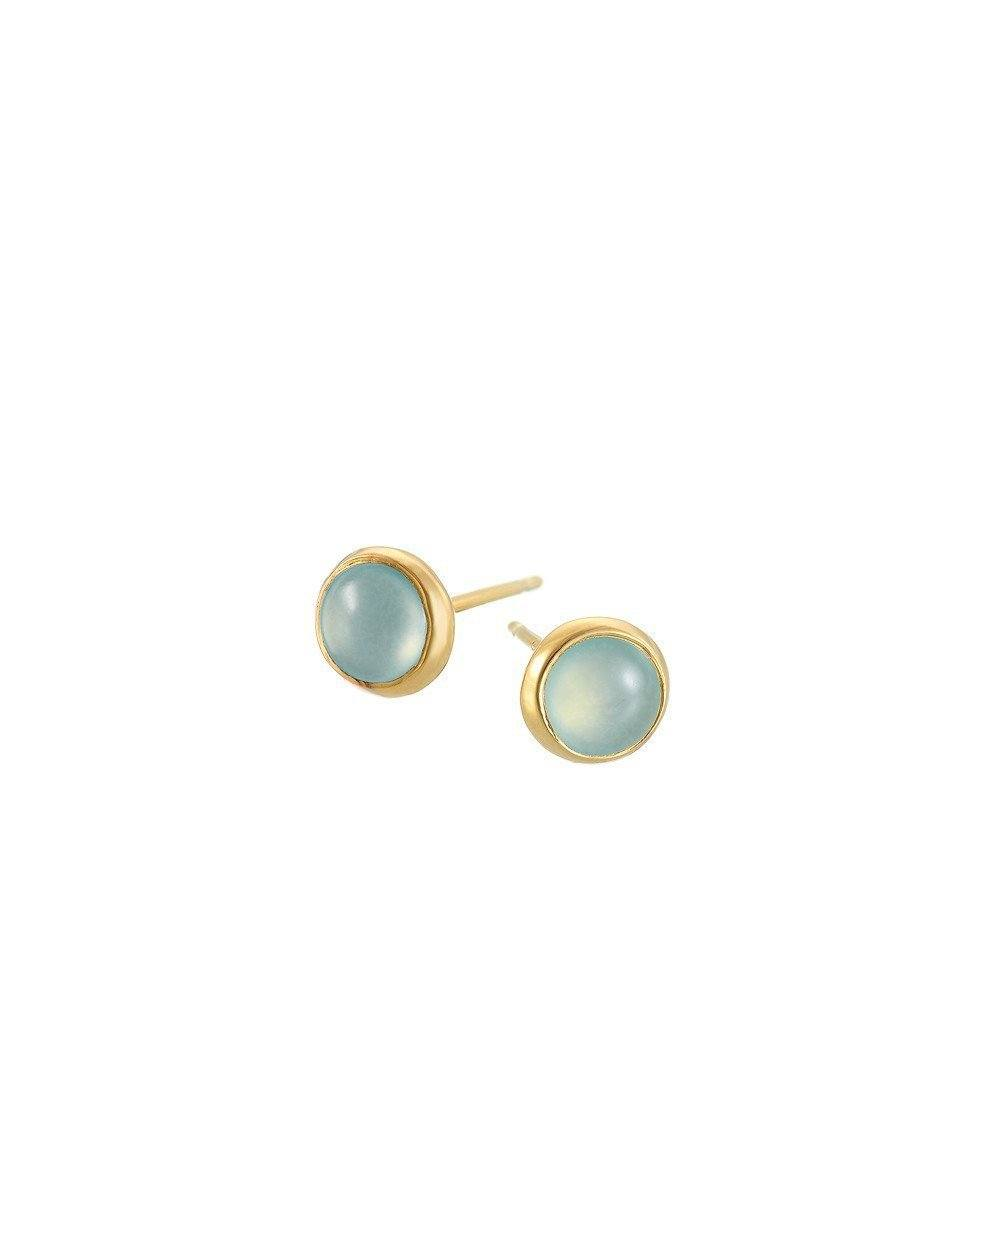 Exploring the beauty of nature in design; these simply stunning 18k gold plating sterling silver stud earrings with aqua gem insets are the perfect go-to accessory for daily wear or as a special something for that someone special